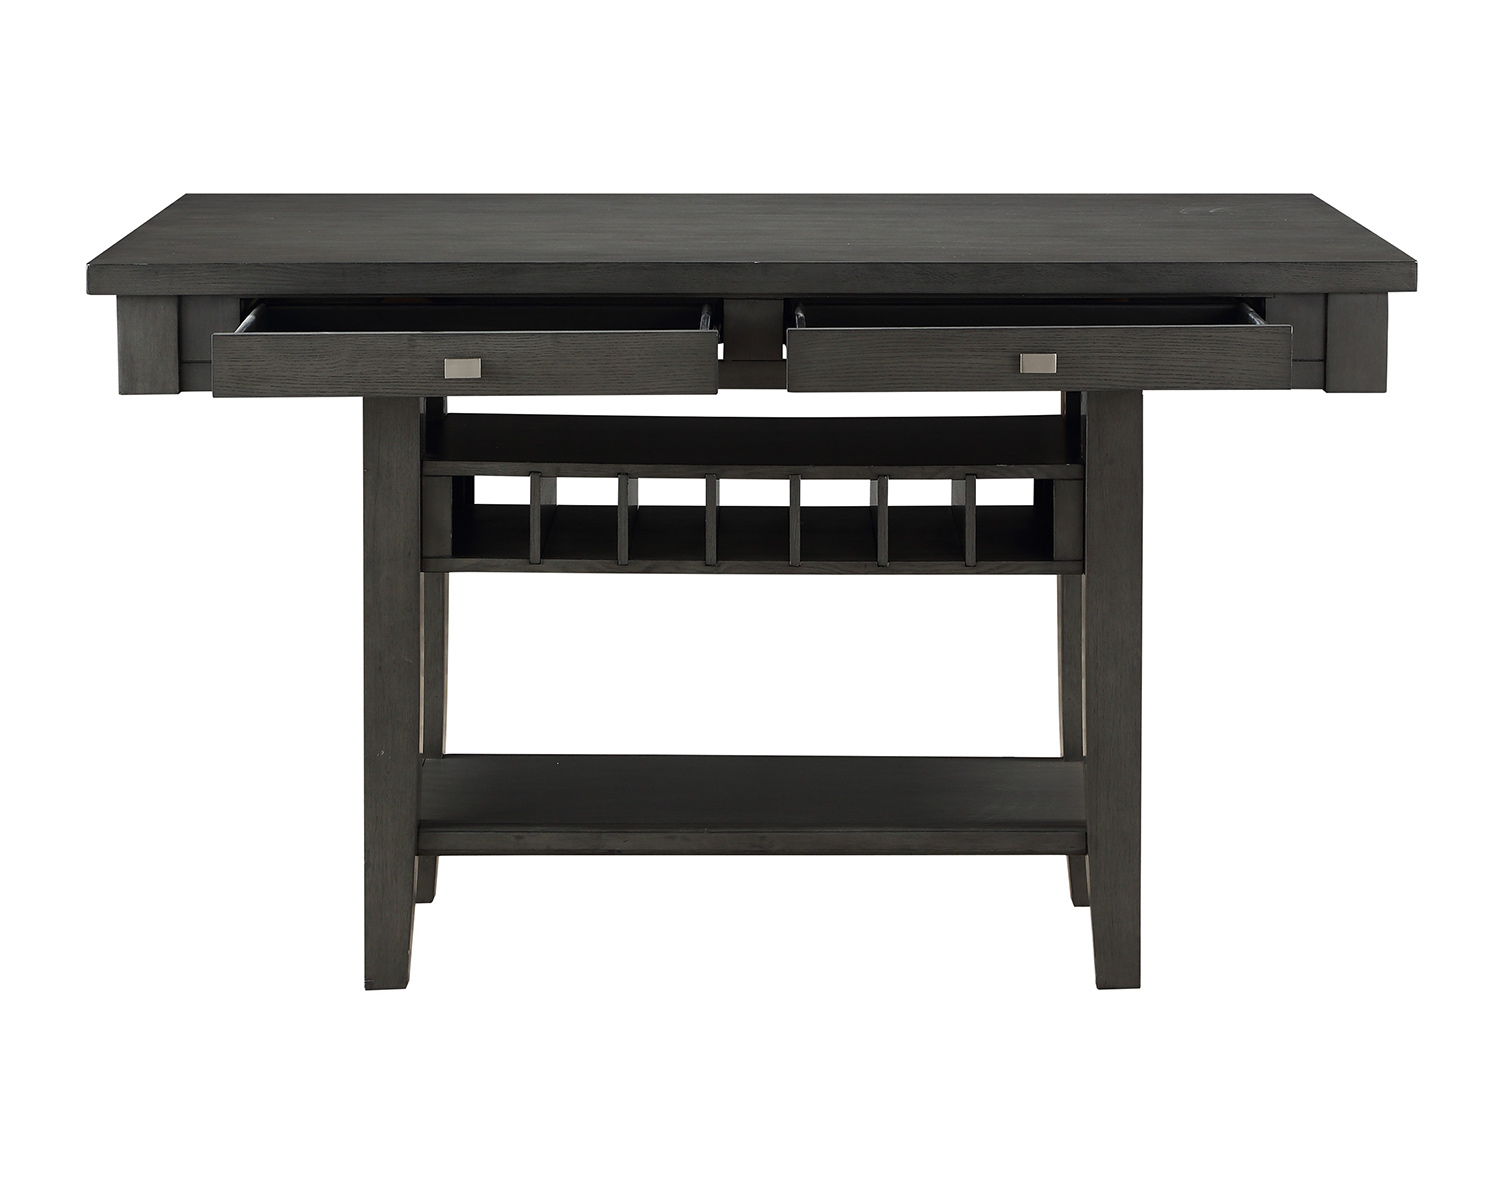 Homelegance Baresford Counter Height DiningTable - Gray